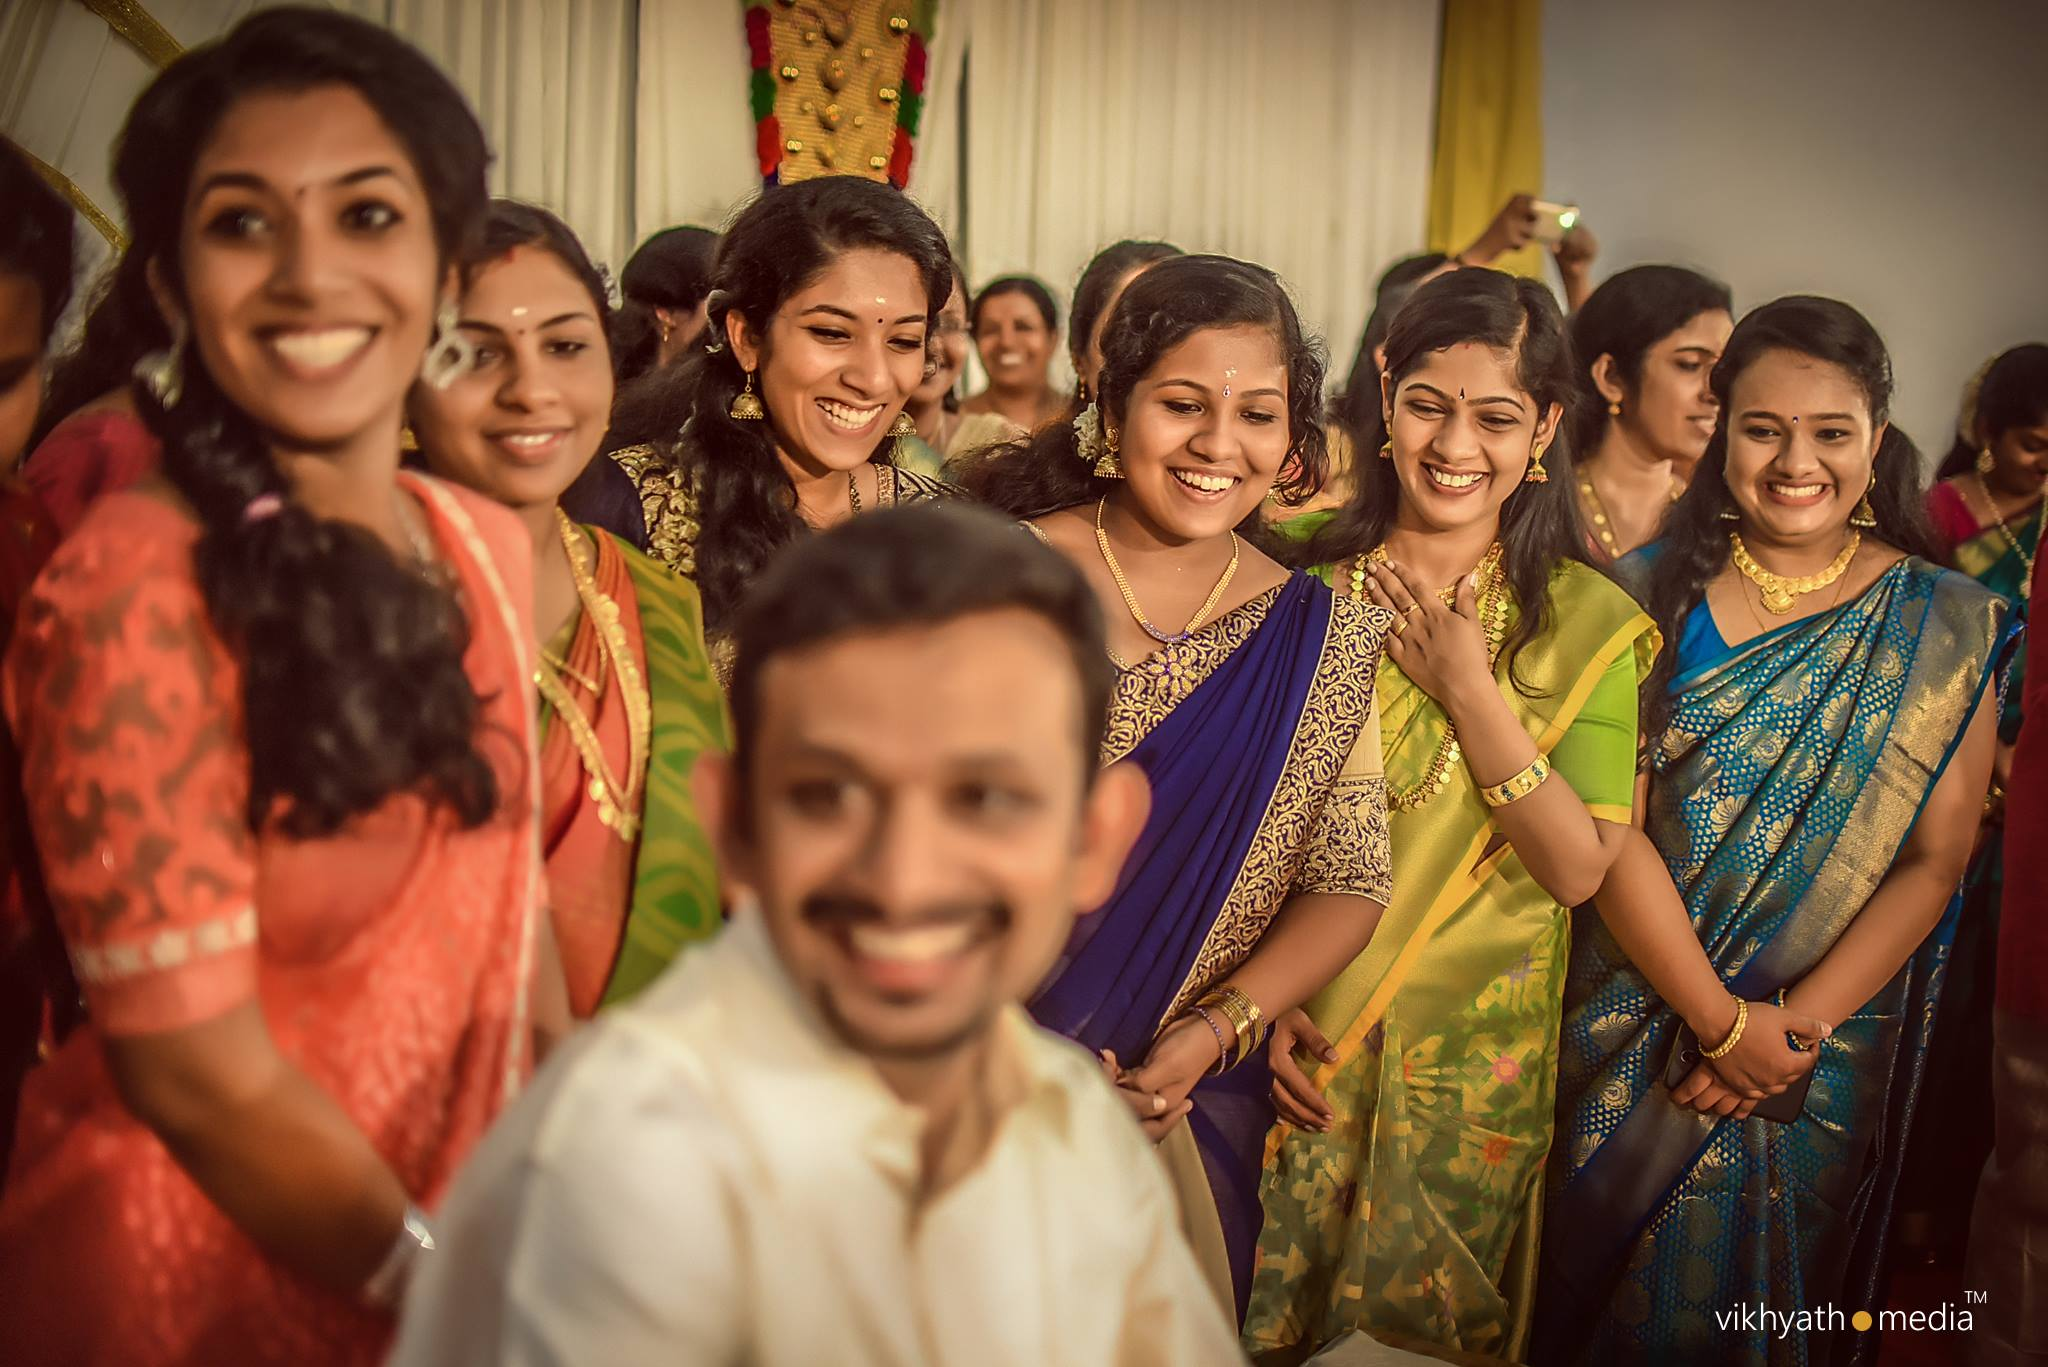 Hindu candid wedding photography